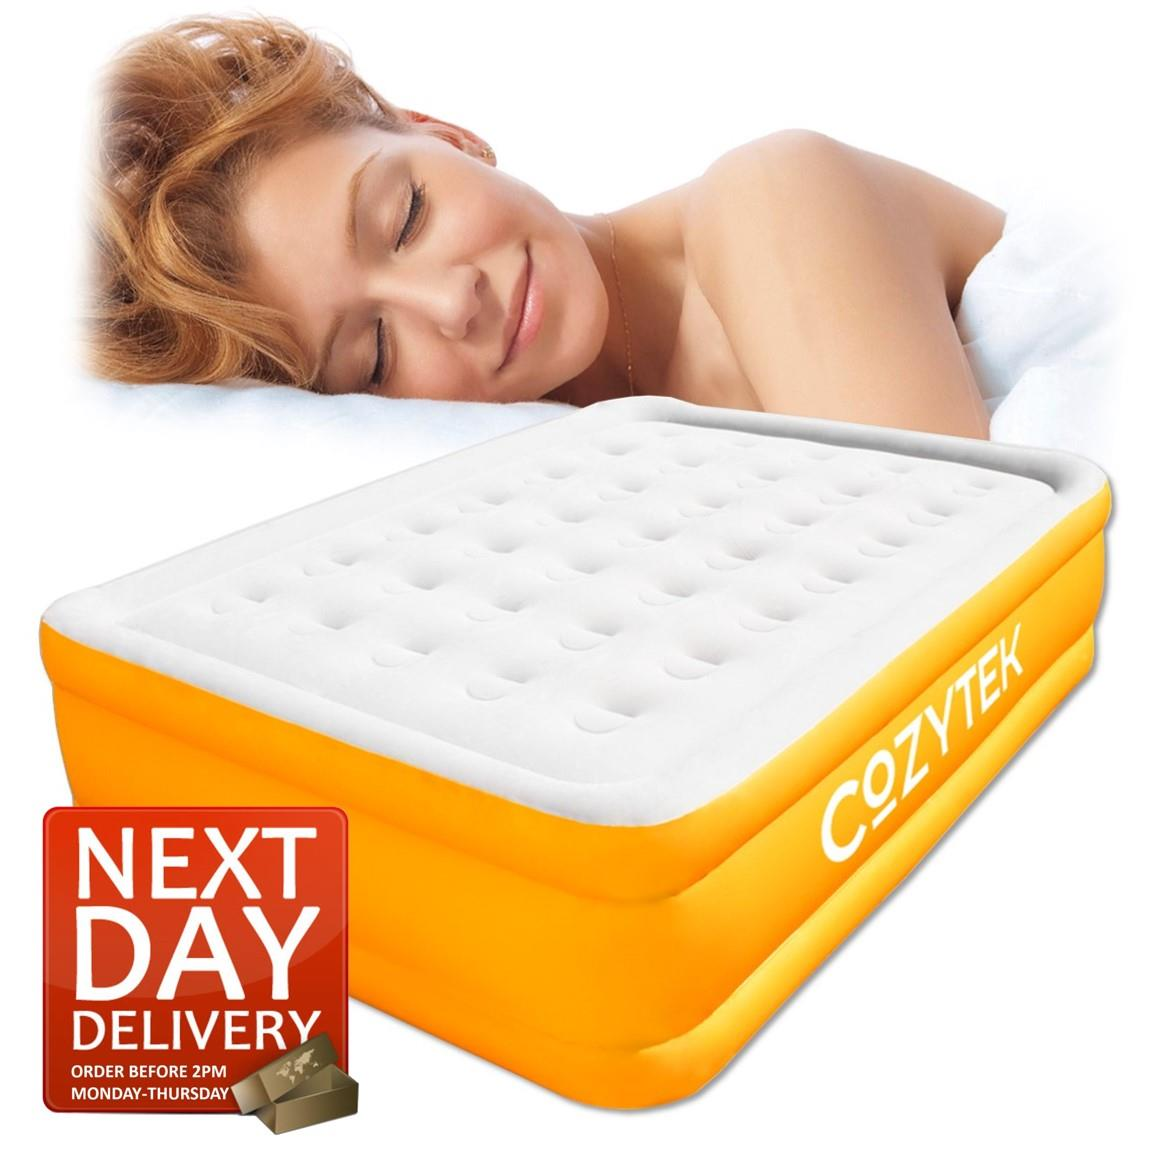 Double Air Bed Blow Up Bed Inflatable Air Mattress With Built In Electric Pump 5060452748337 Ebay